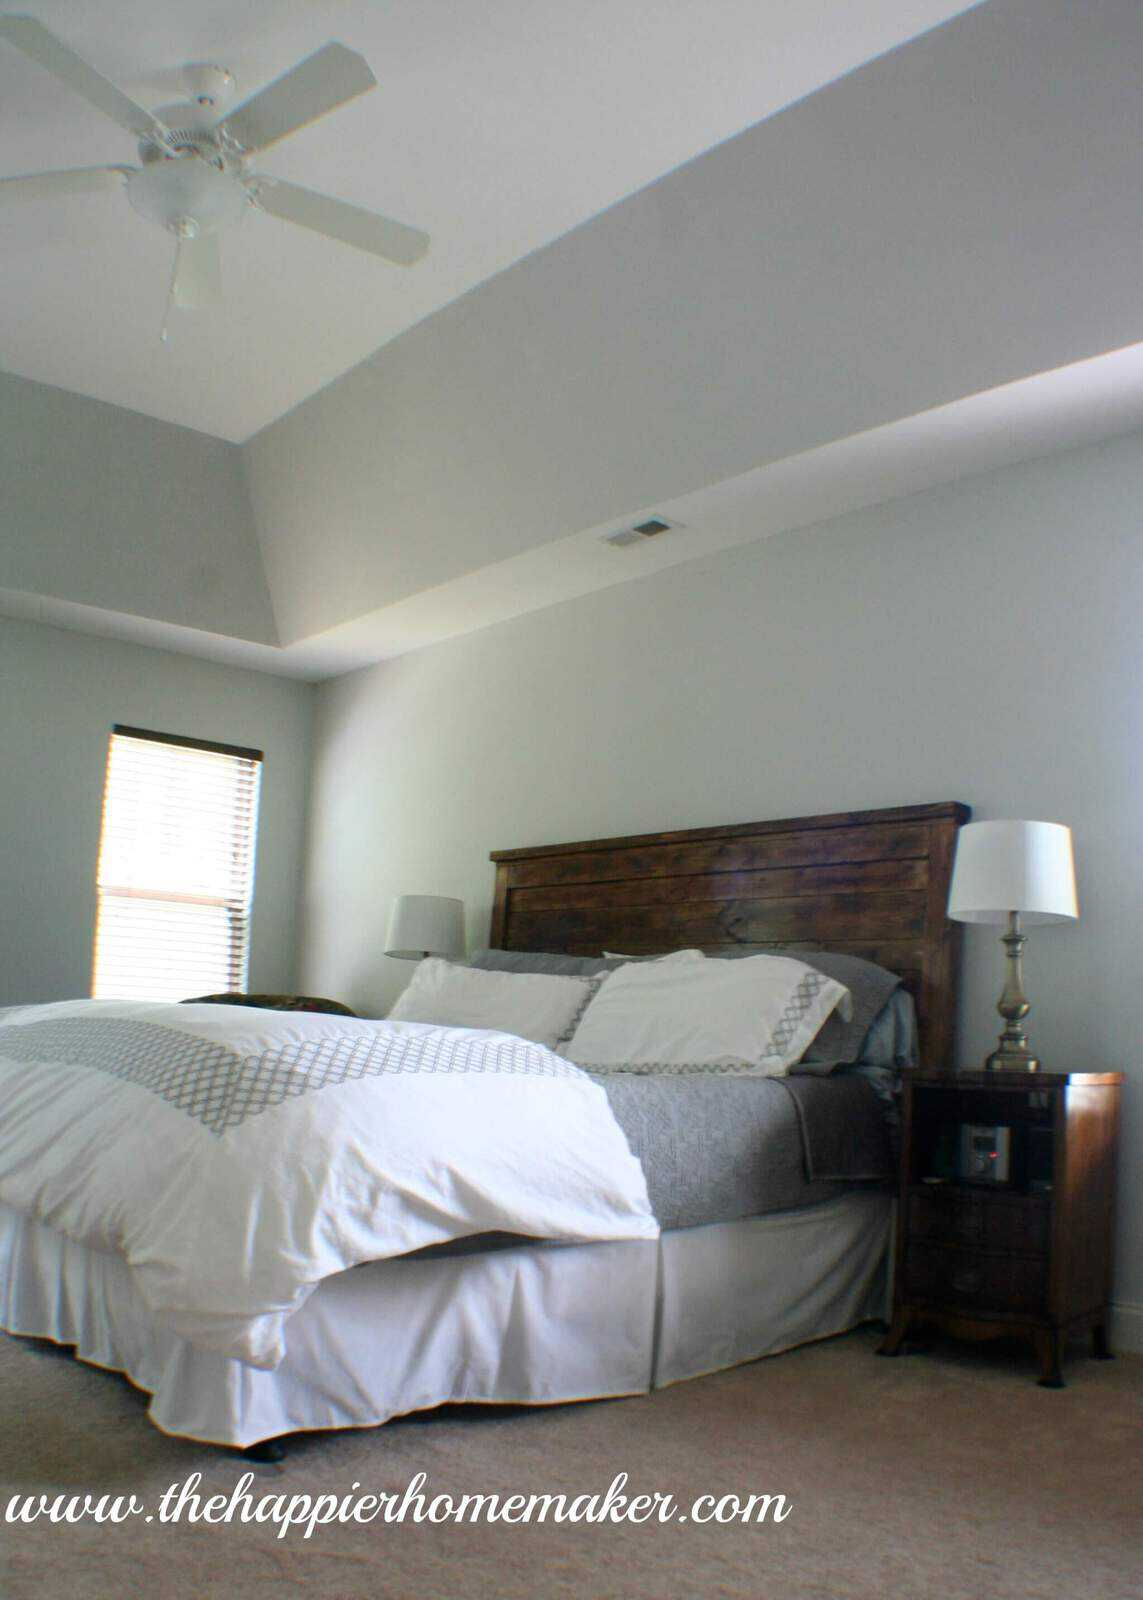 A bedroom with a dark wood headboard and gray bedding